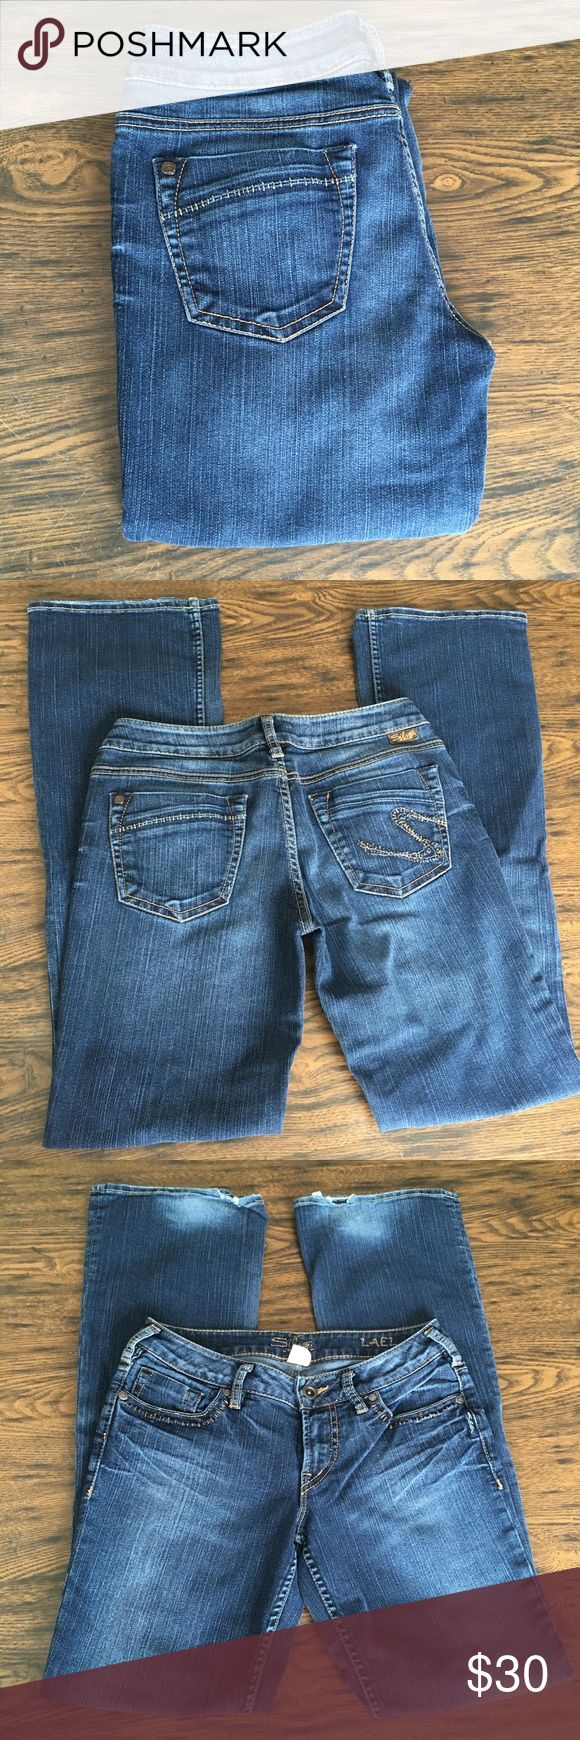 Women's Silver Jeans Women's Silver Jeans Good Condition with a small amount of fraying and fading in the bottoms  Size 28 Silver Jeans Jeans Boot Cut